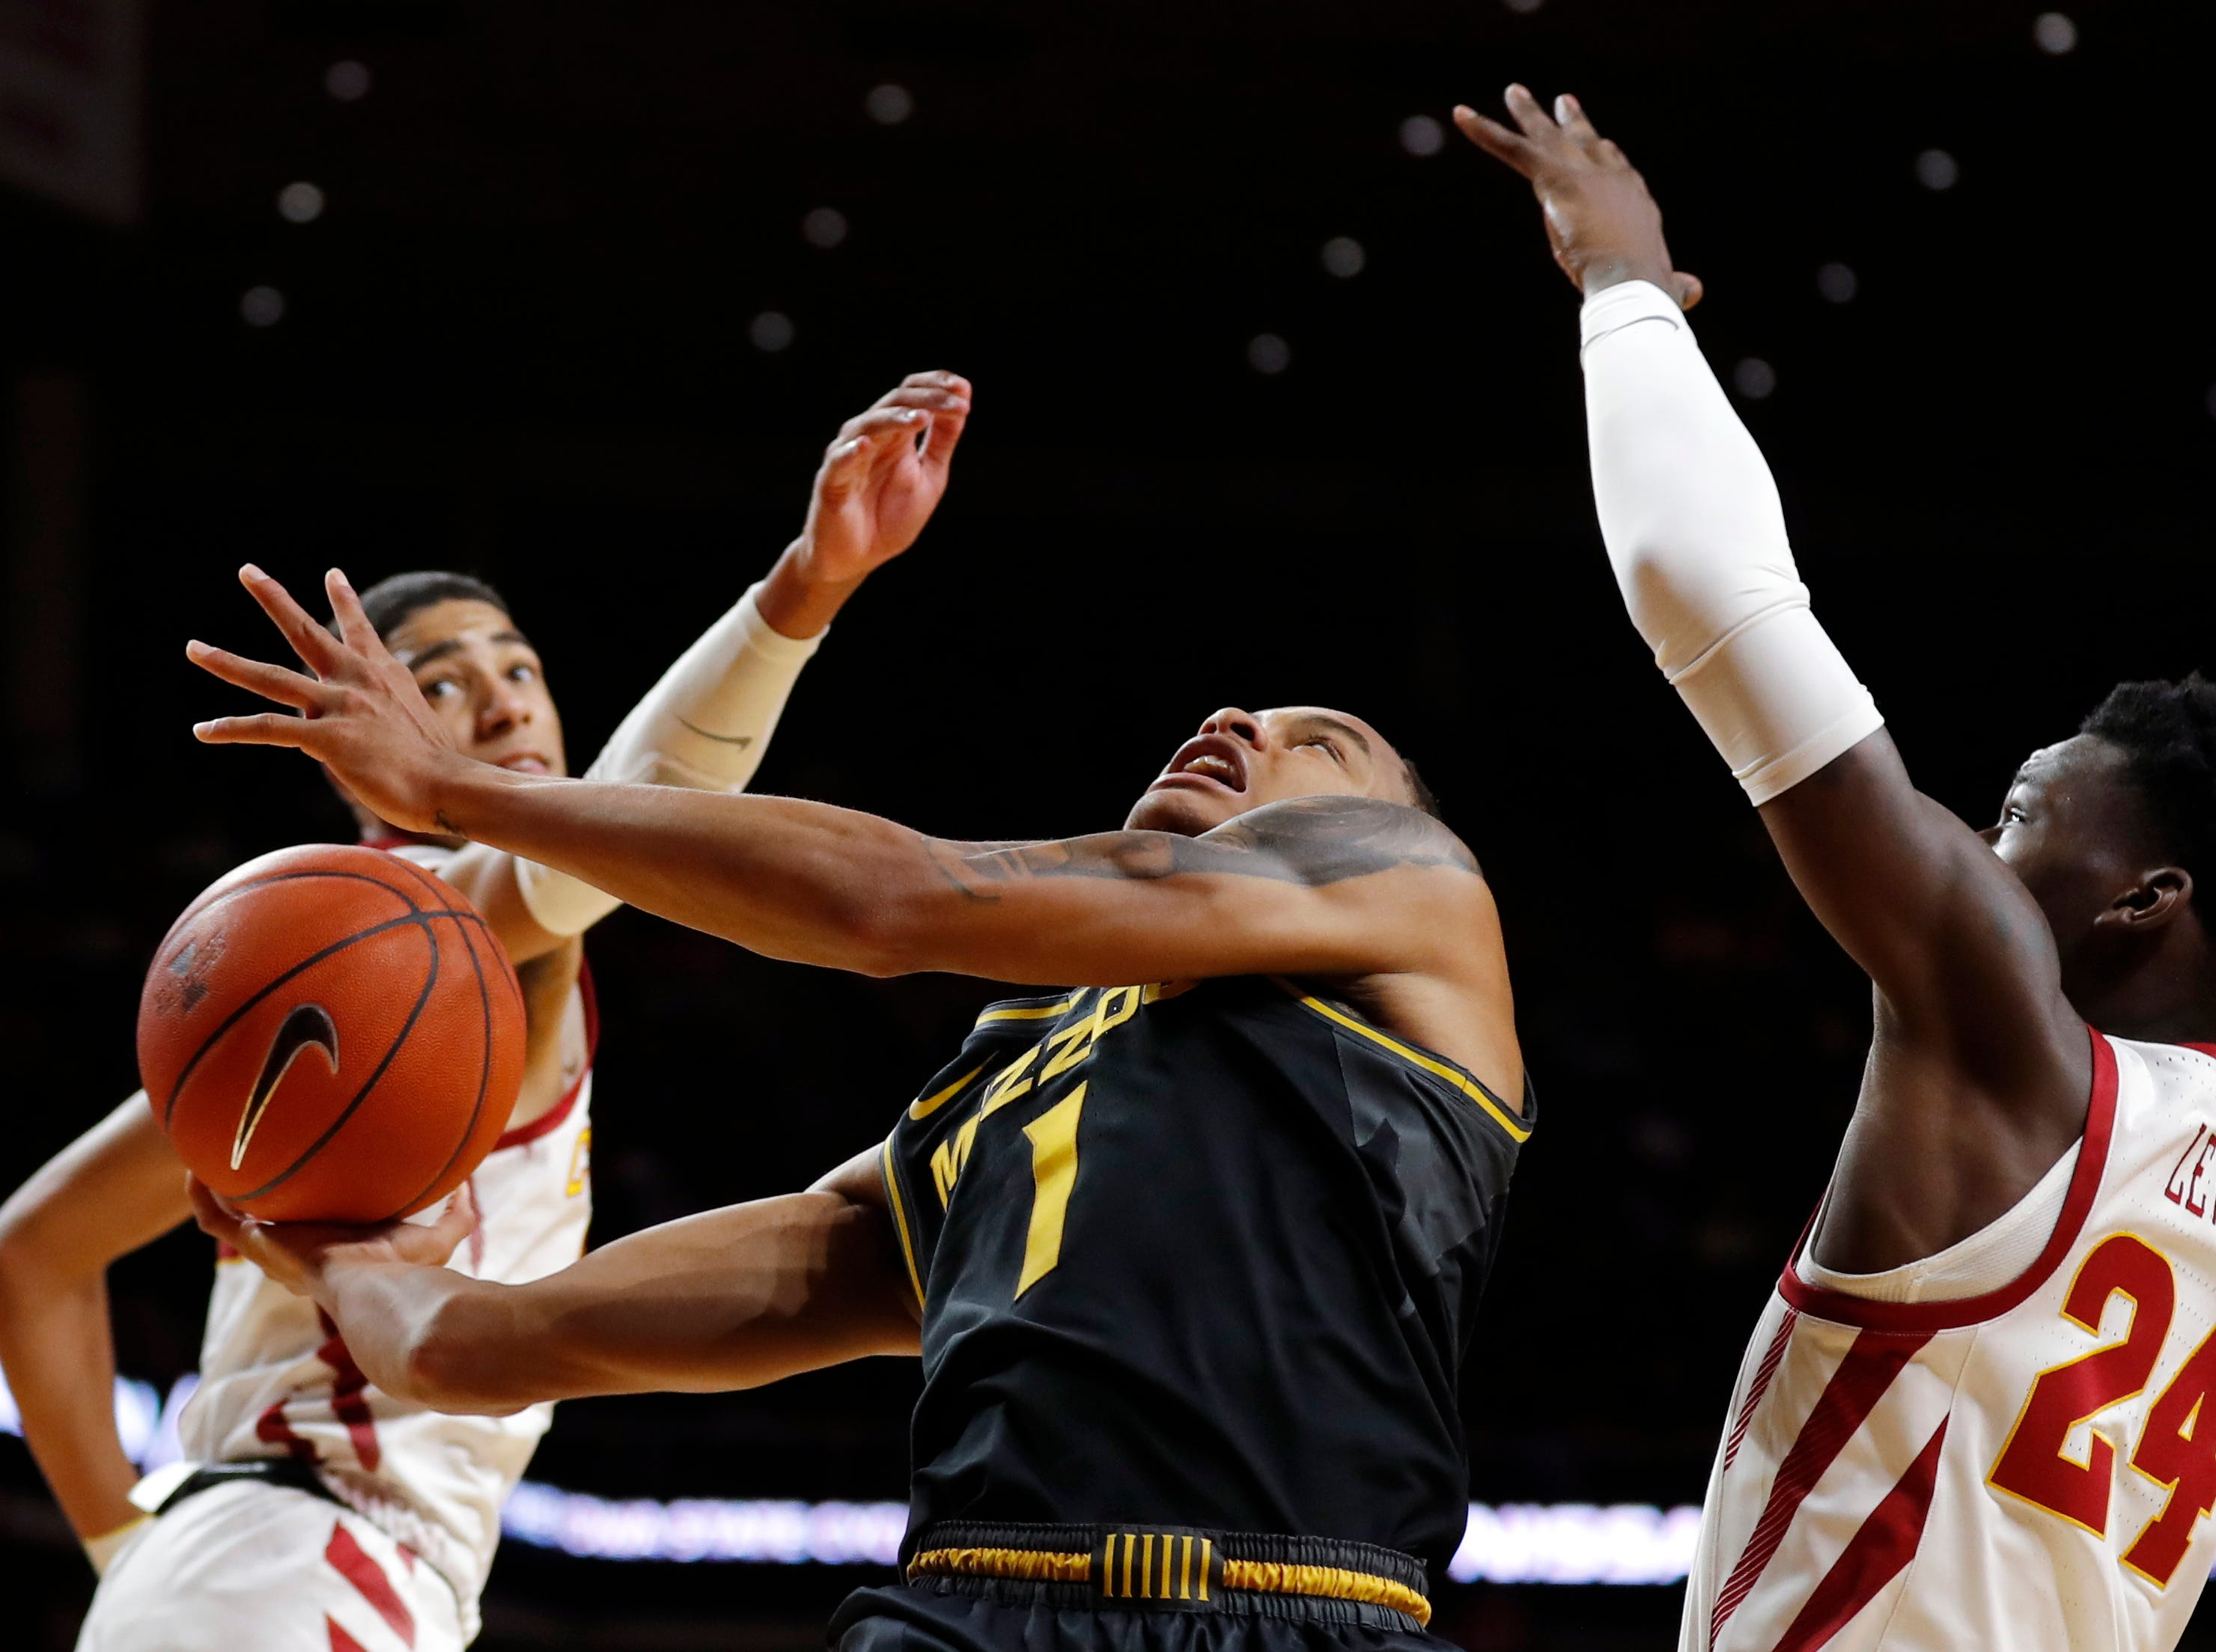 Missouri guard Xavier Pinson, center, drives to the basket between Iowa State's Tyrese Haliburton, left, and Terrence Lewis during the second half of an NCAA college basketball game, Friday, Nov. 9, 2018, in Ames, Iowa. Iowa State won 76-59.